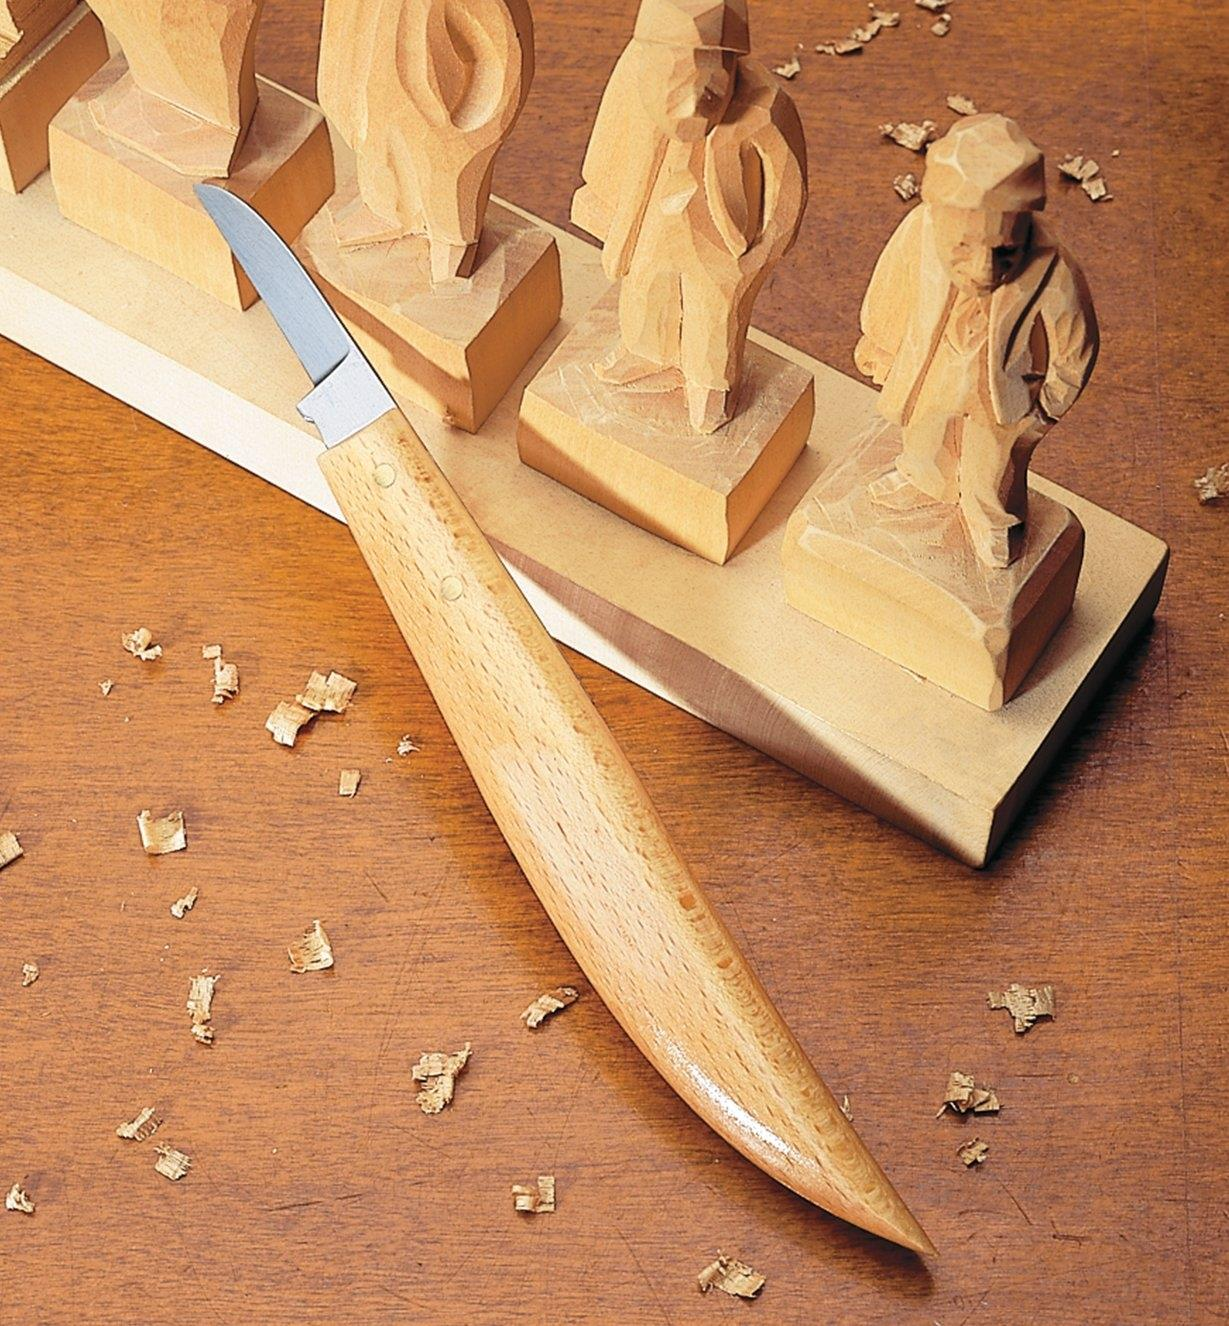 Chip Knife #8 placed next to a series of carved figurines